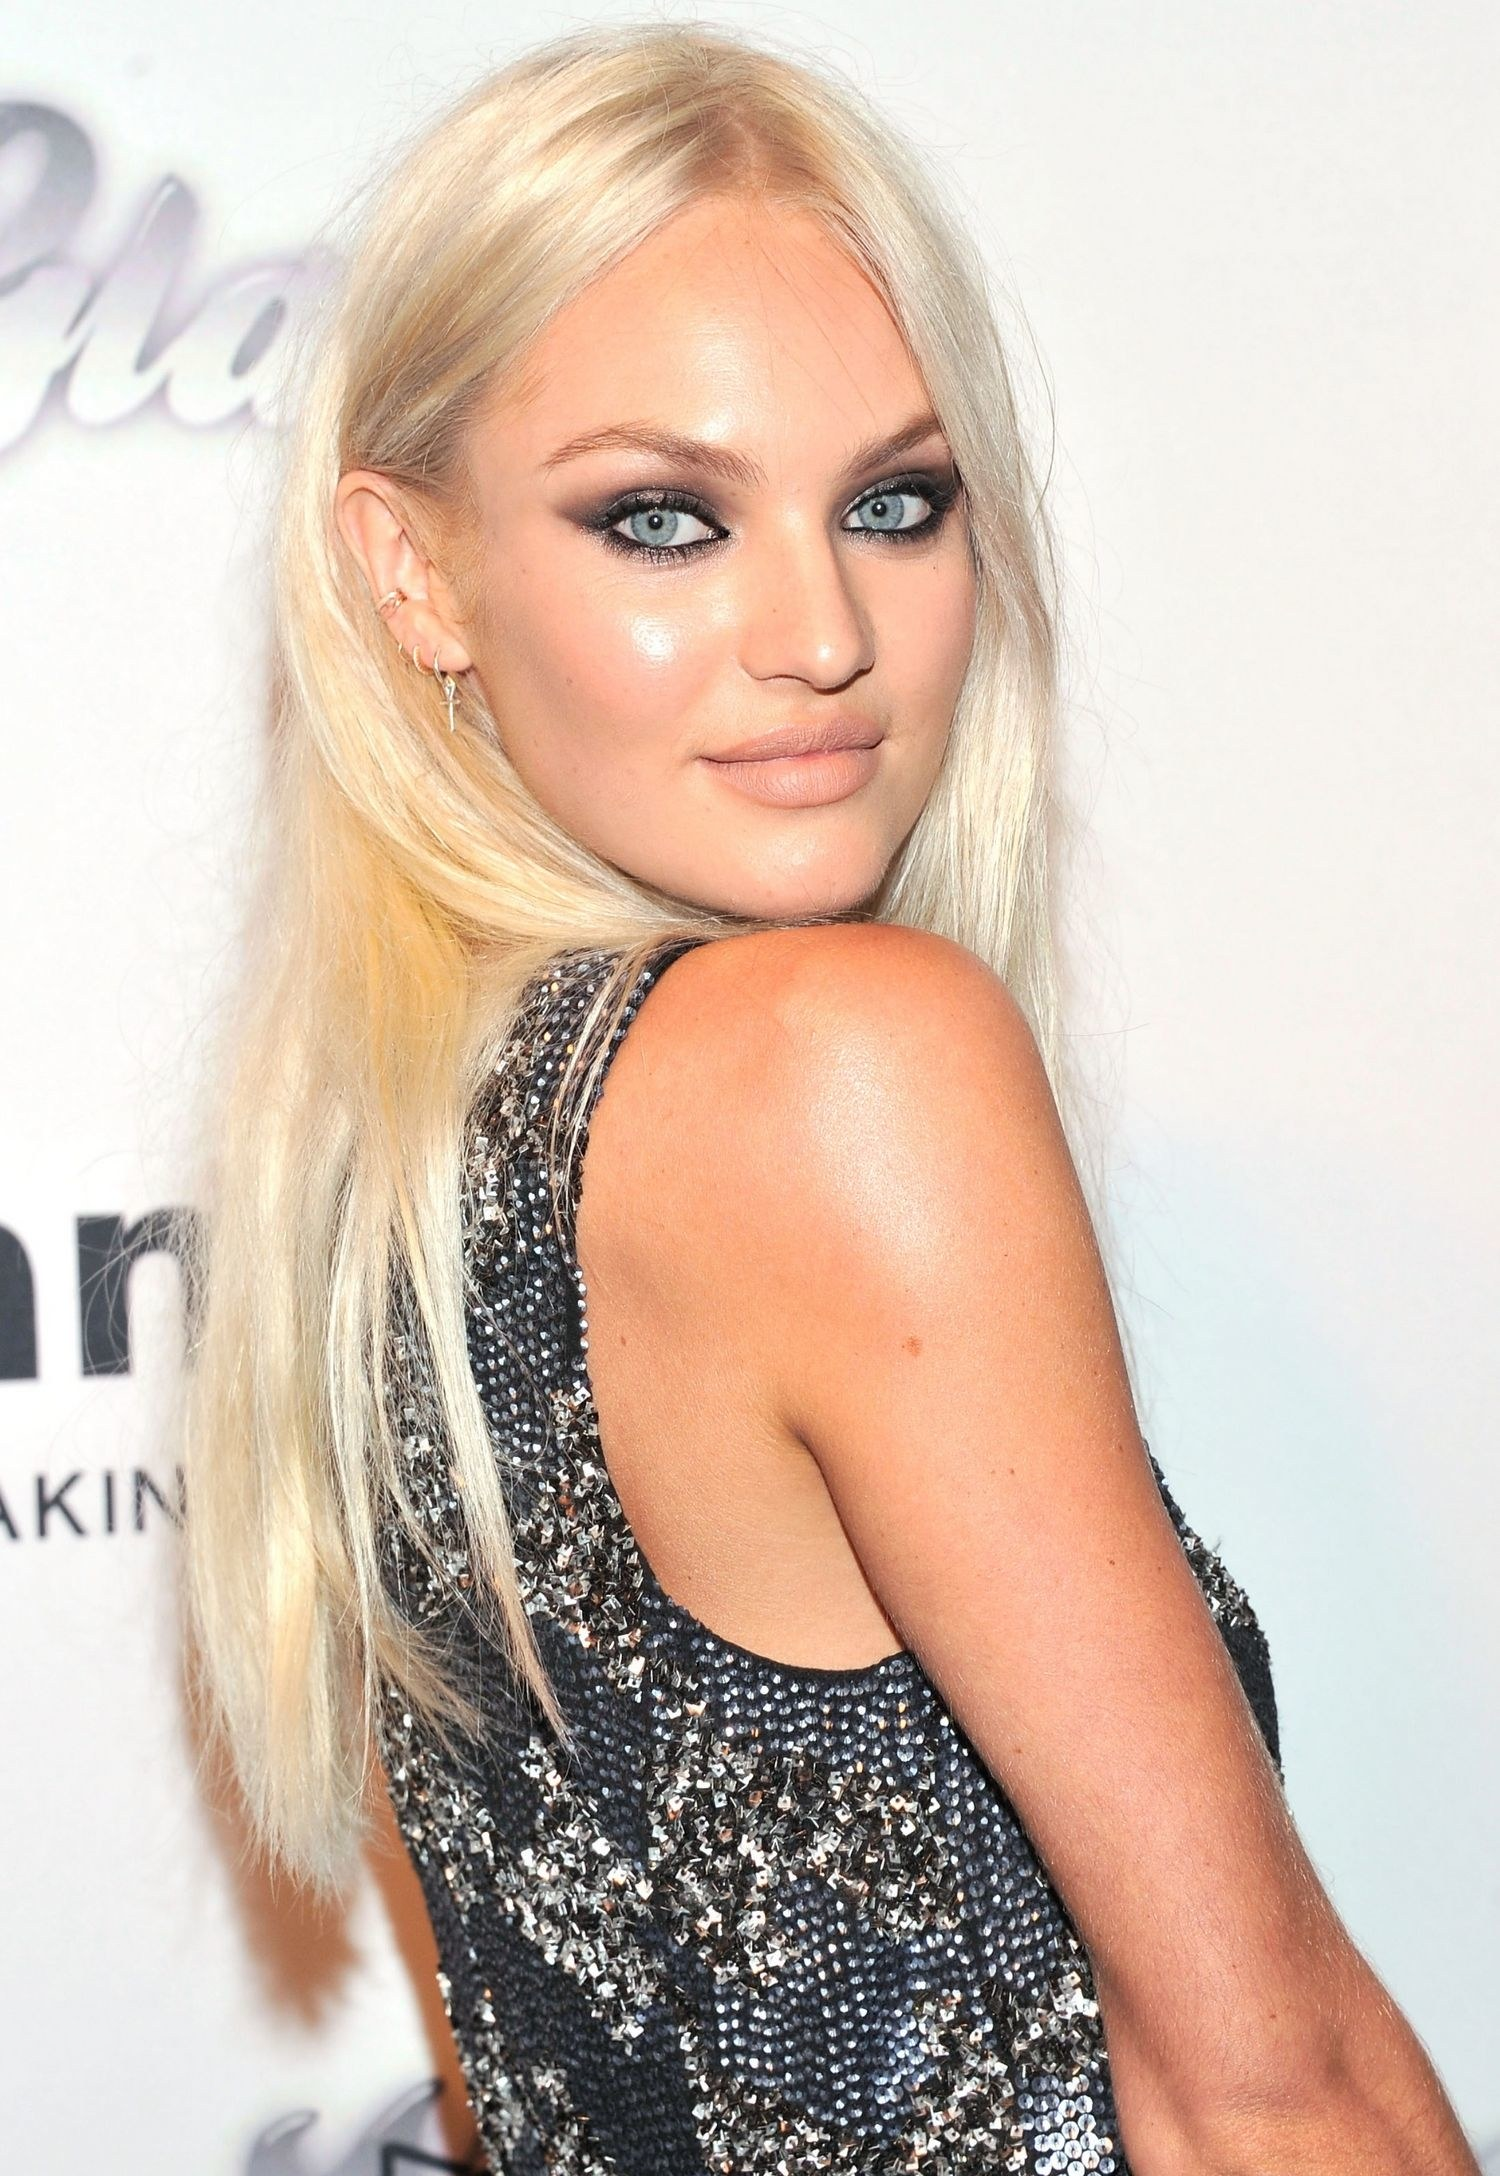 Candice Swanepoel Net Worth, Family, Husband And Biography 2